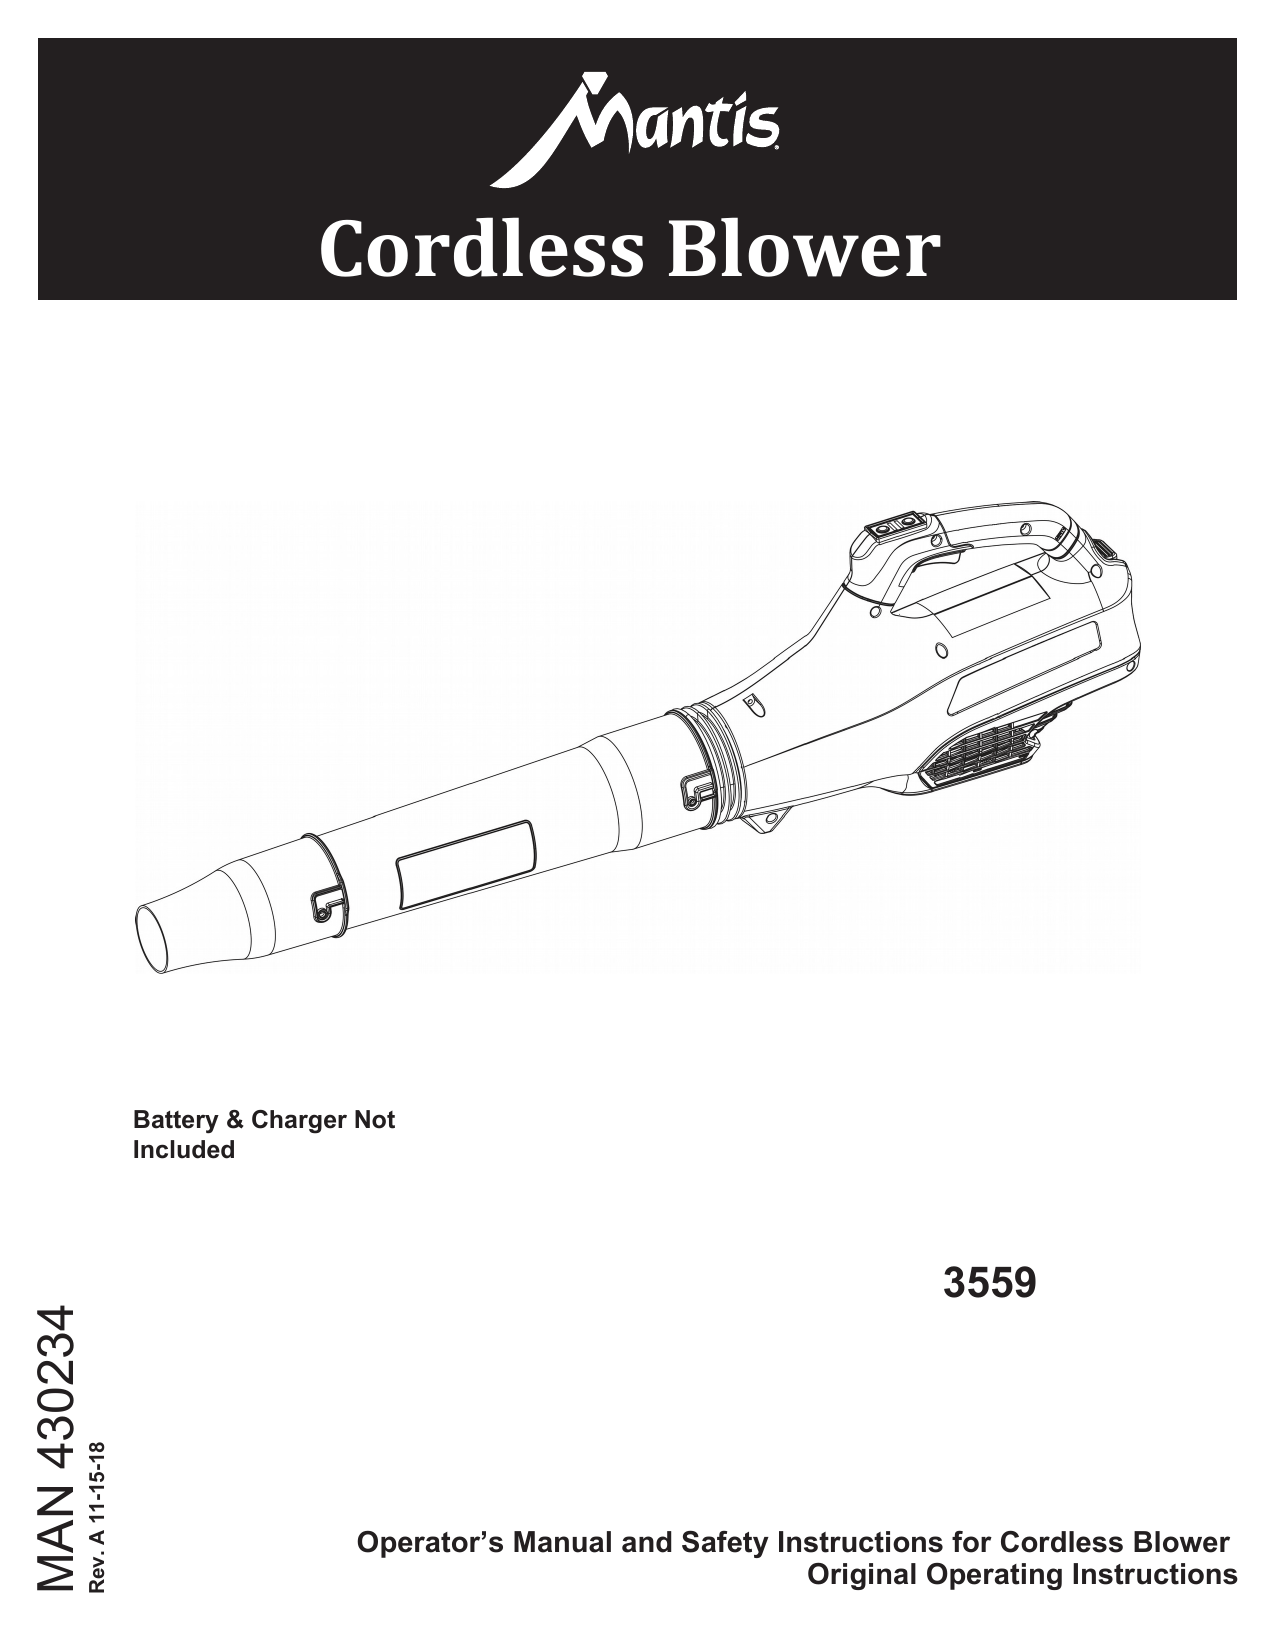 Mantis 3559, 3601, 3621 Cordless Product Owner's Manual